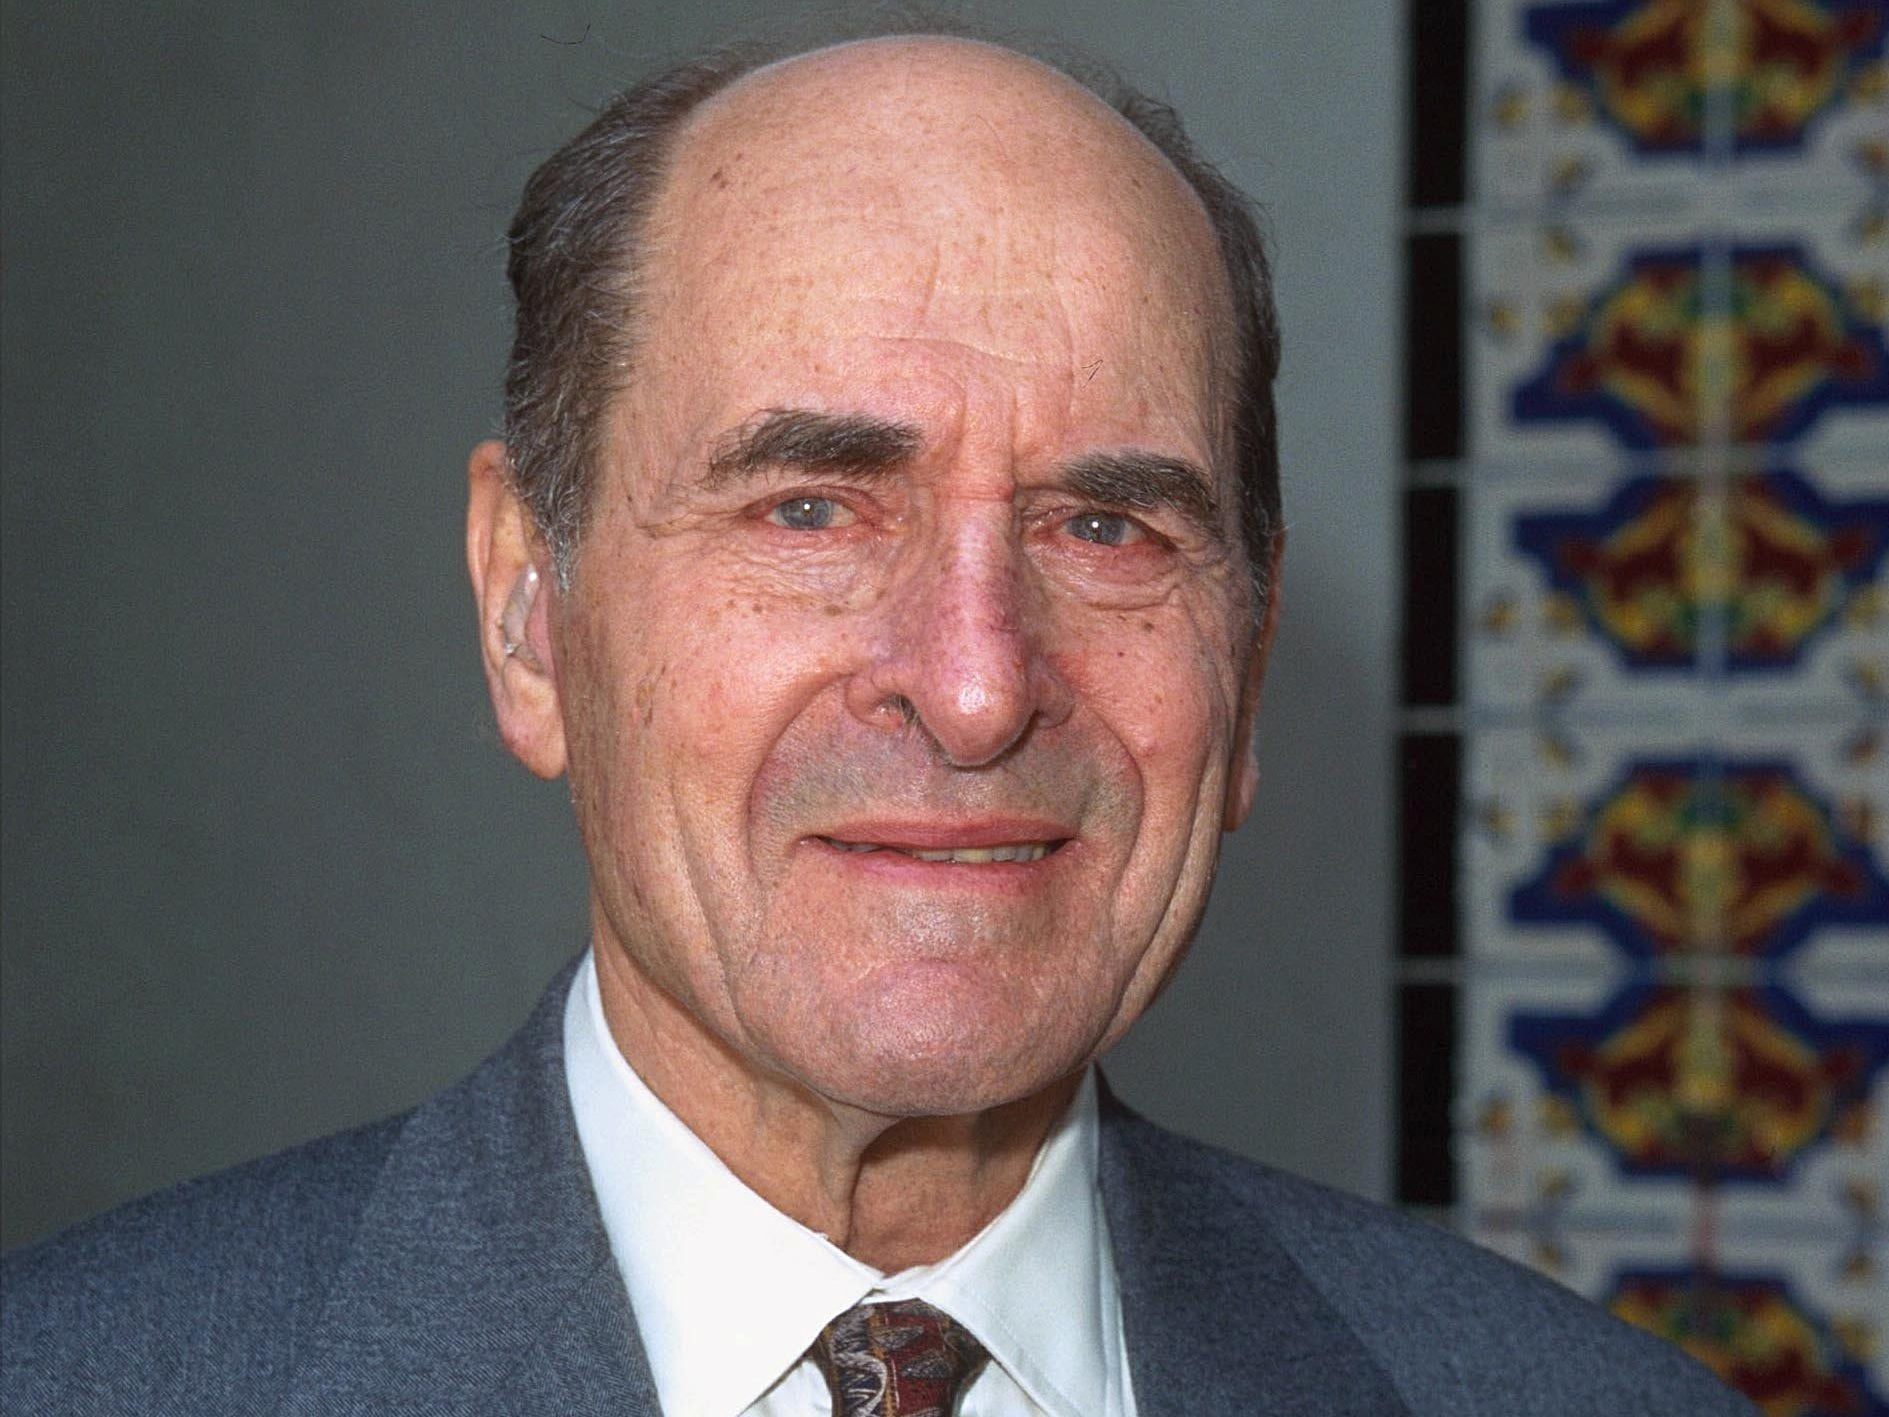 henry heimlich Henry heimlich: henry heimlich, (henry judah heimlich), american physician (born feb 3, 1920, wilmington, del—died dec 17, 2016, cincinnati, ohio), developed a simple procedure, known as.